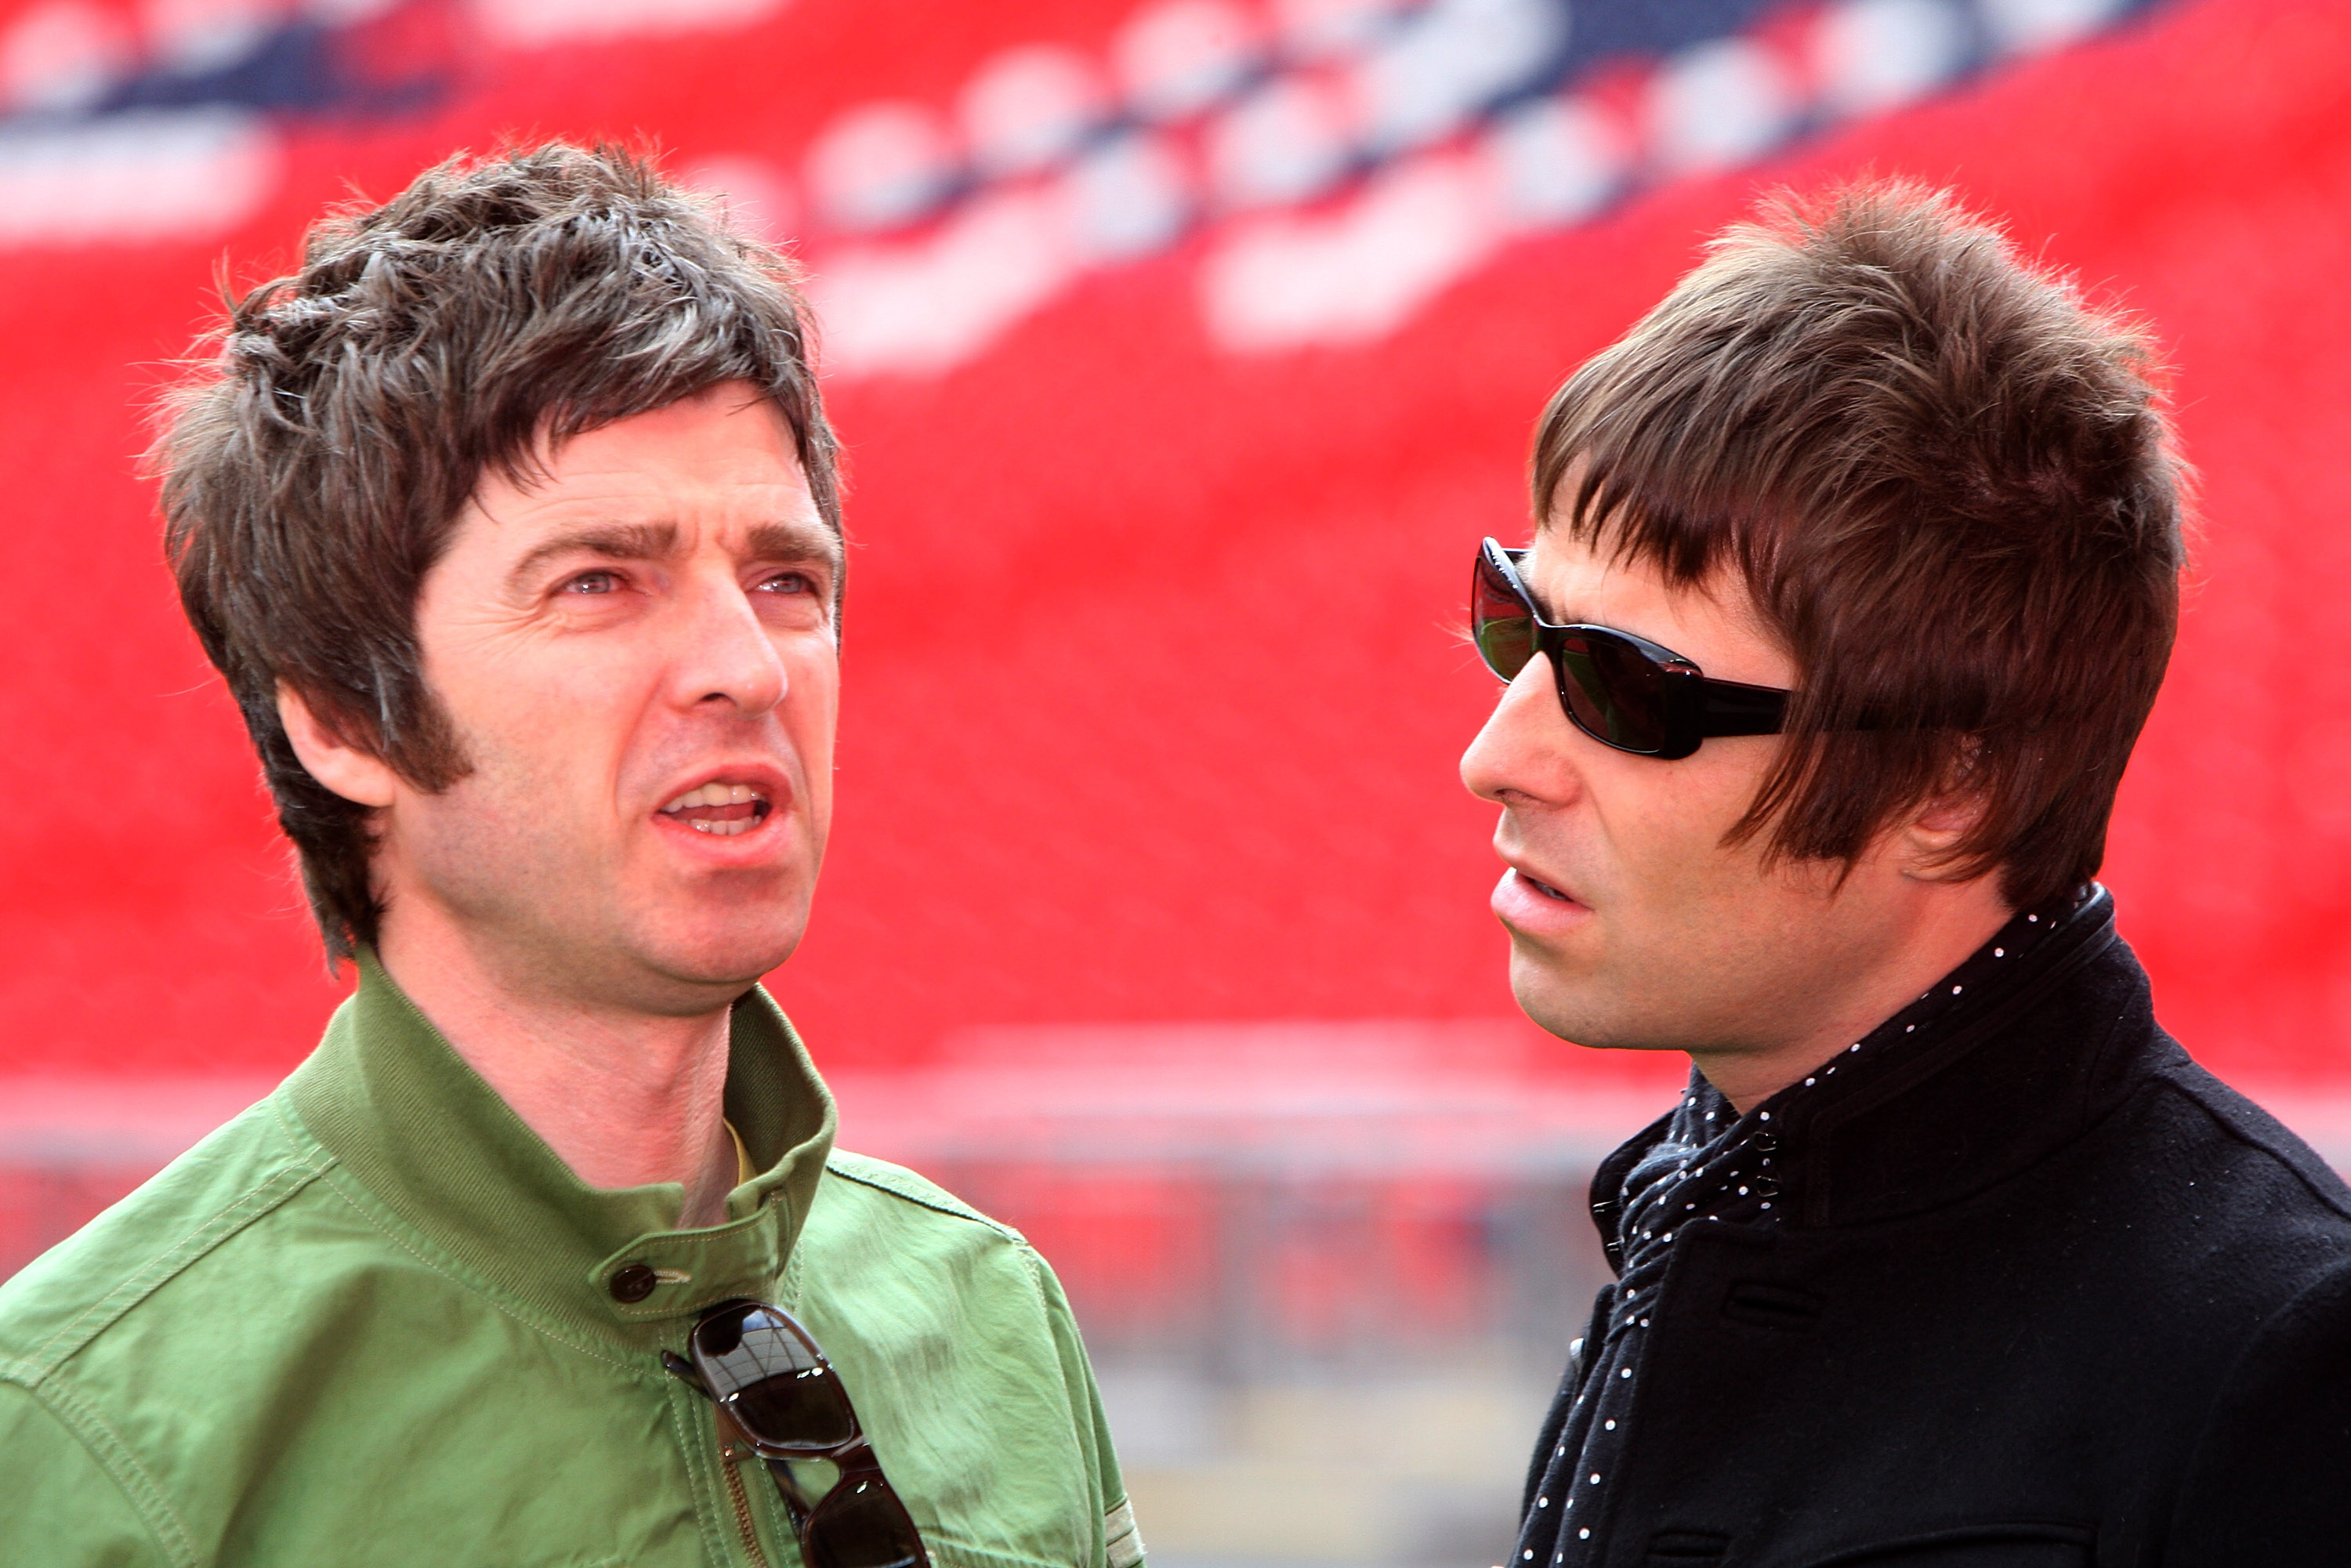 Liam Gallagher says that Noel is the main stumbling block in an Oasis reunion